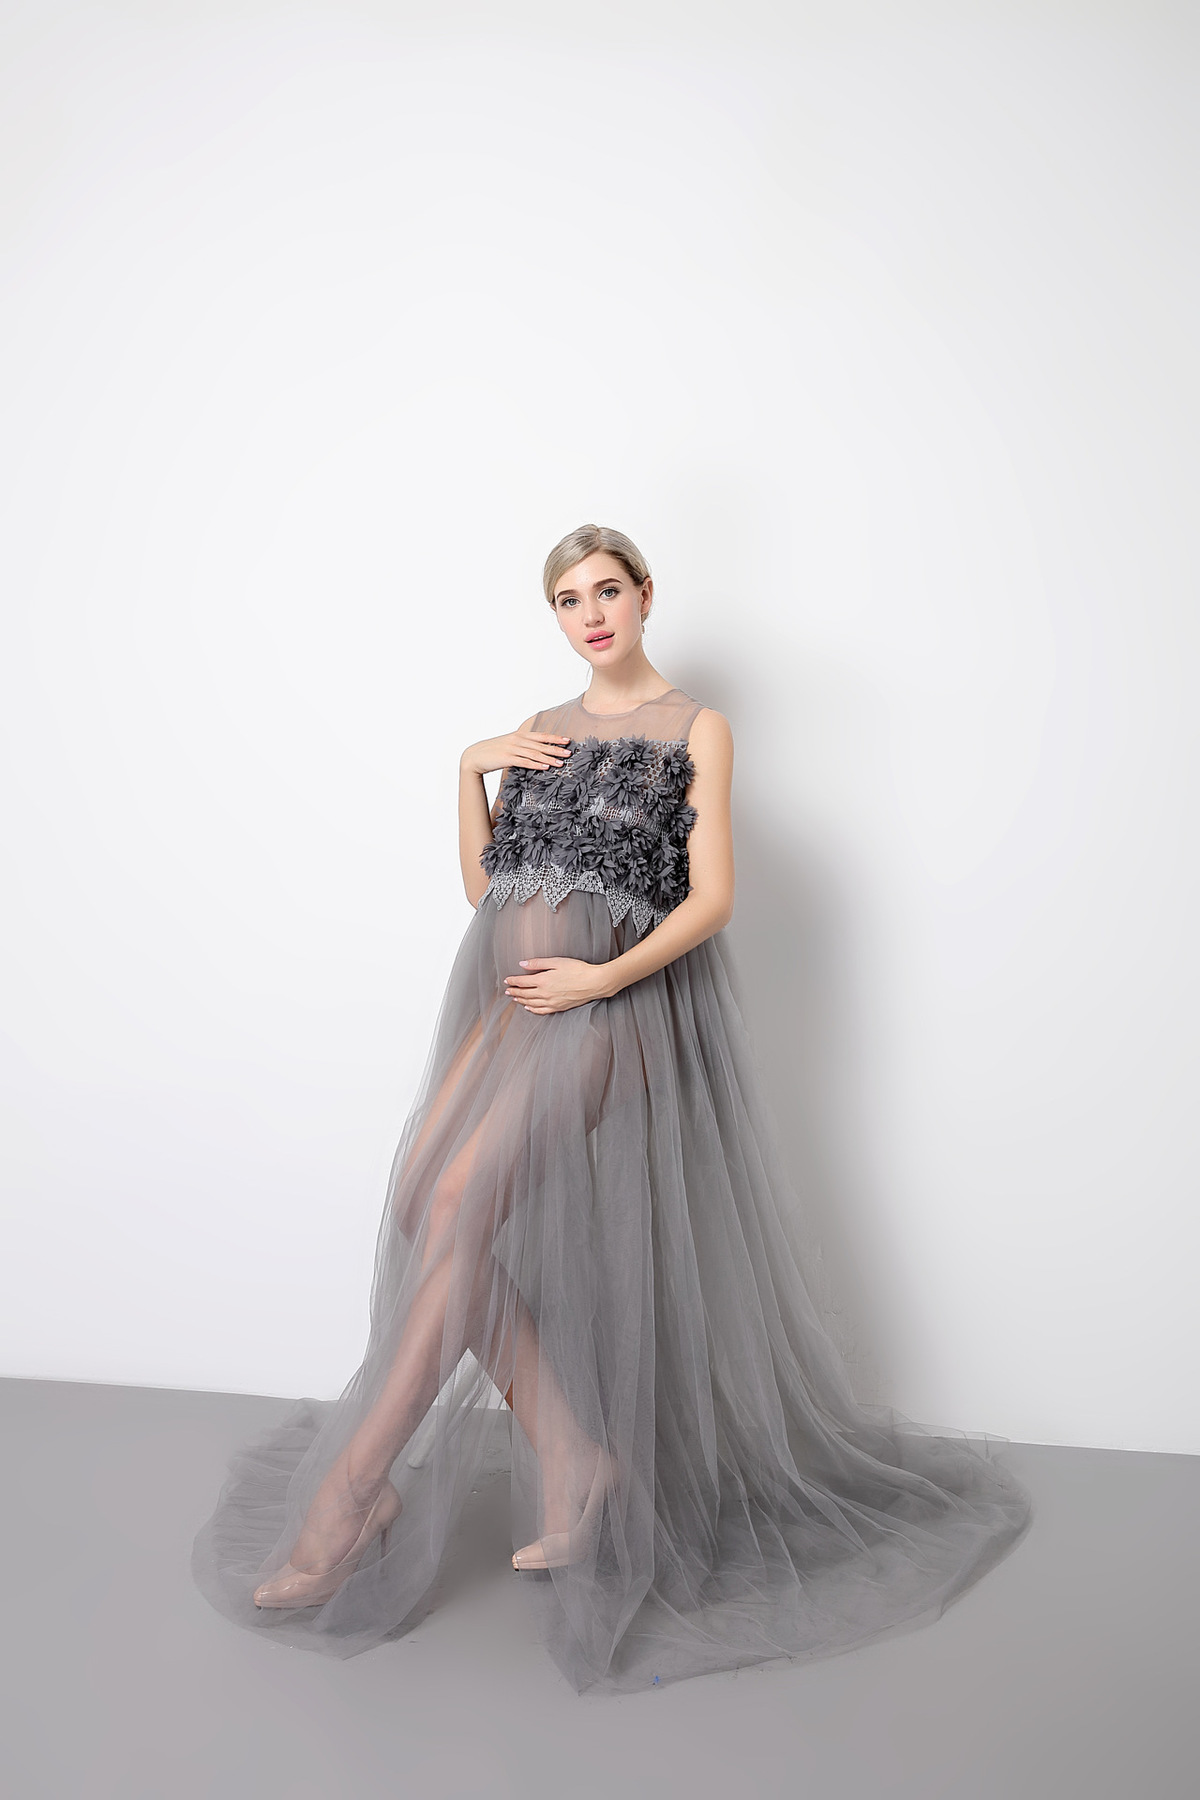 Maternity shoot dresses images braidsmaid dress cocktail dress online shop 2017 maternity mama gown transparent maternity dresses online shop 2017 maternity mama gown transparent ombrellifo Gallery